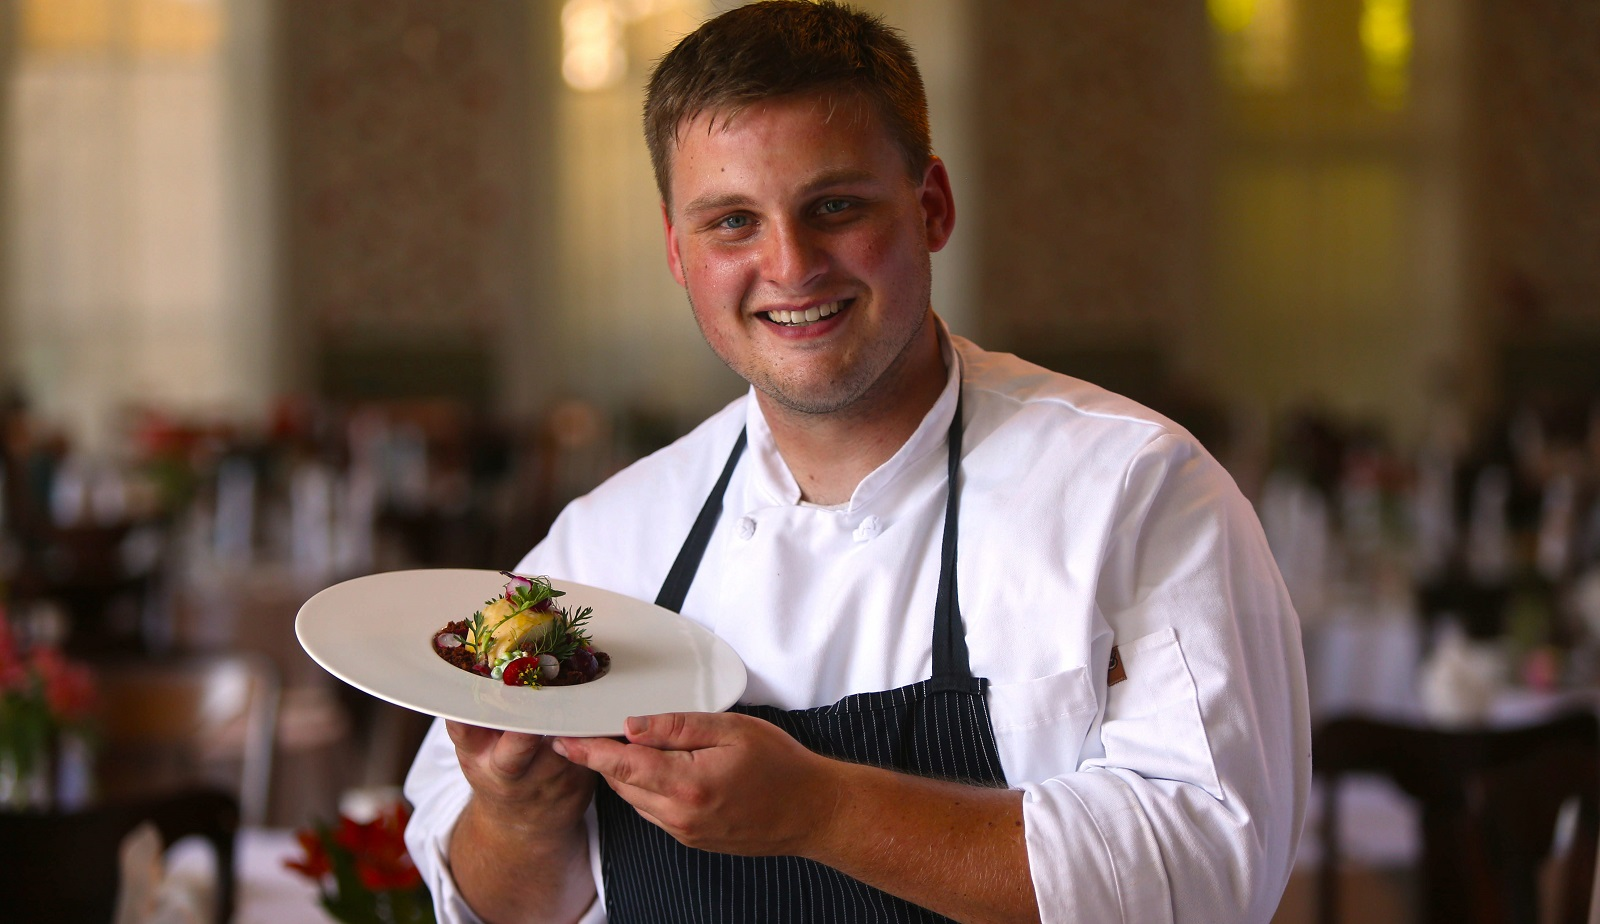 Former Athenaeum Hotel Chef Ross Warhol will revisit Chautauqua again for the week of food events. (Robert Kirkham/Buffalo News file photo)